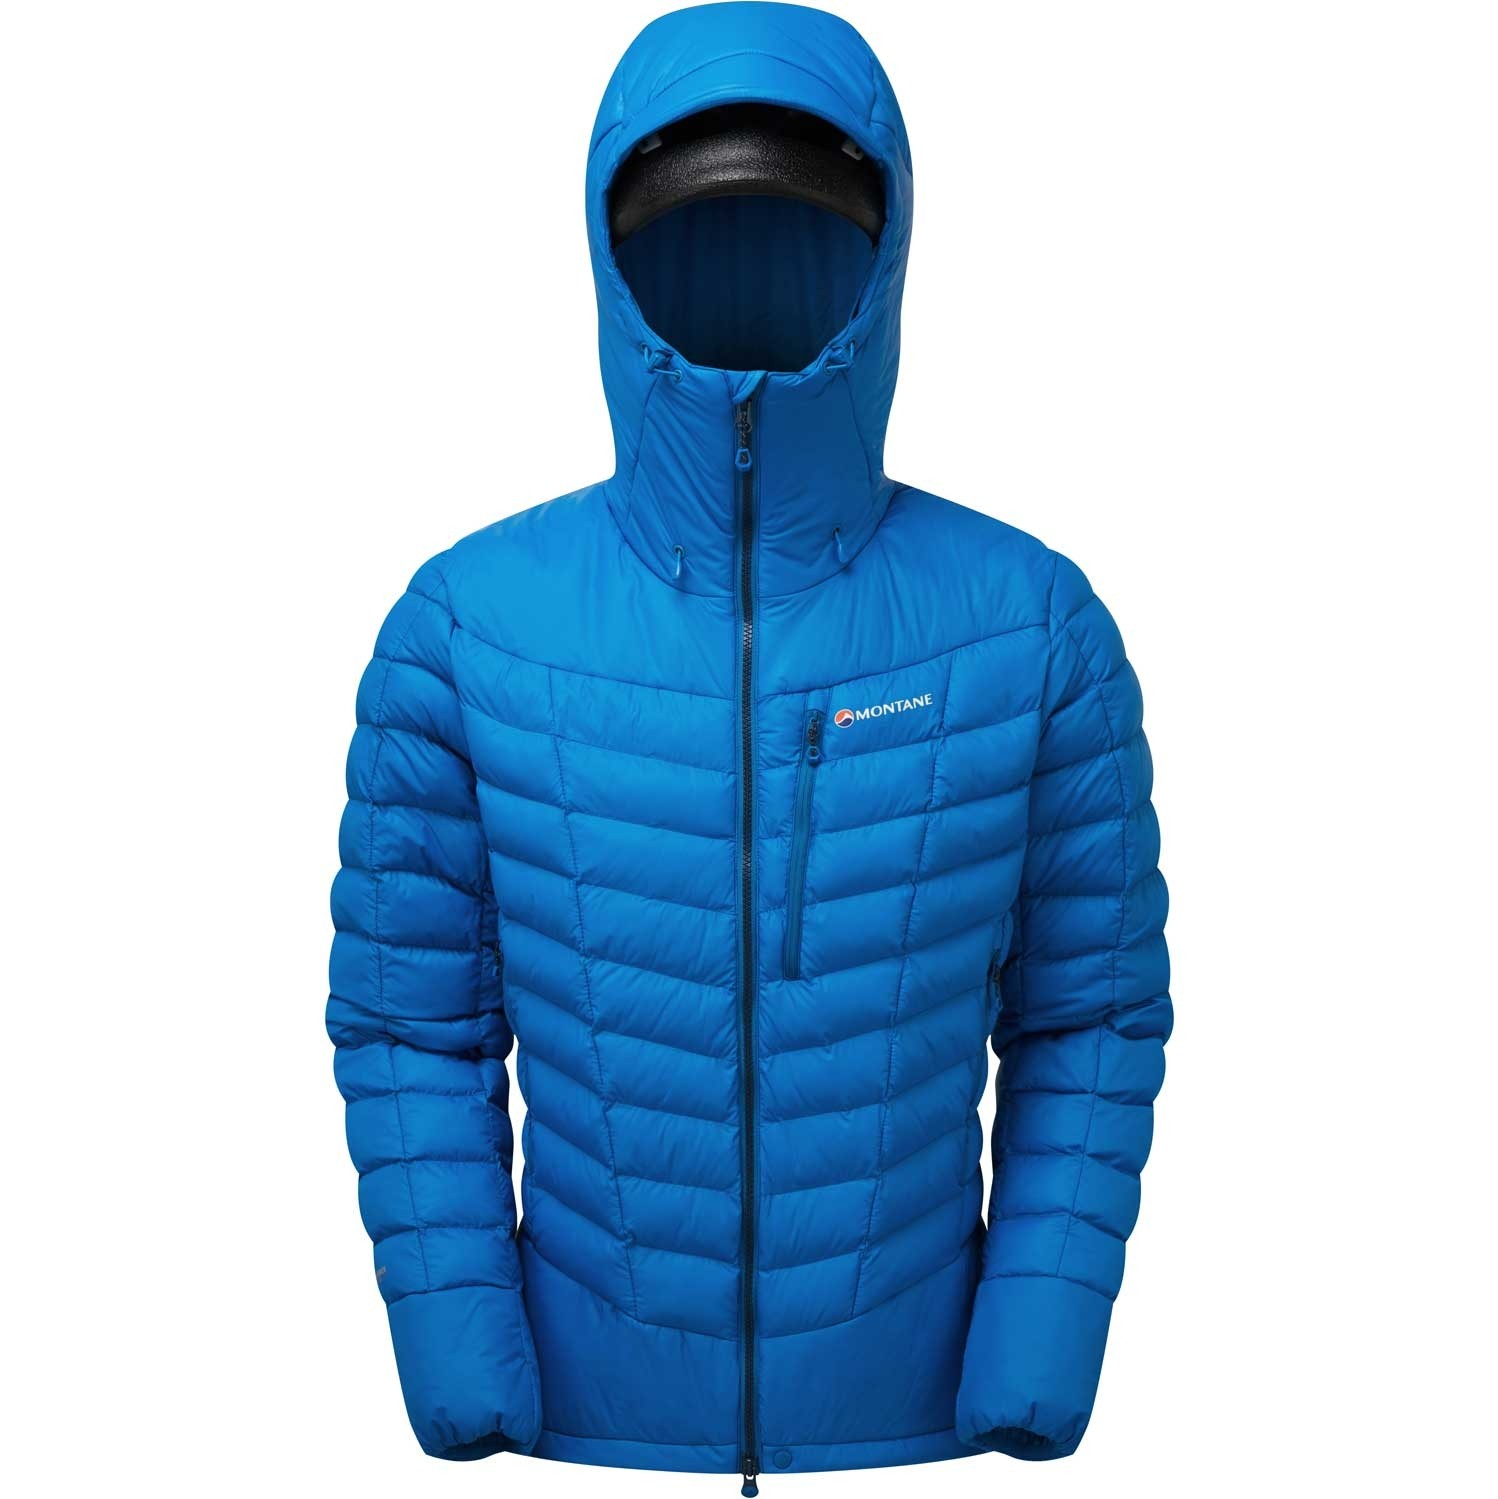 Montane Ground Control Insulated Jacket - Men's - Electric Blue/Antarctic Blue